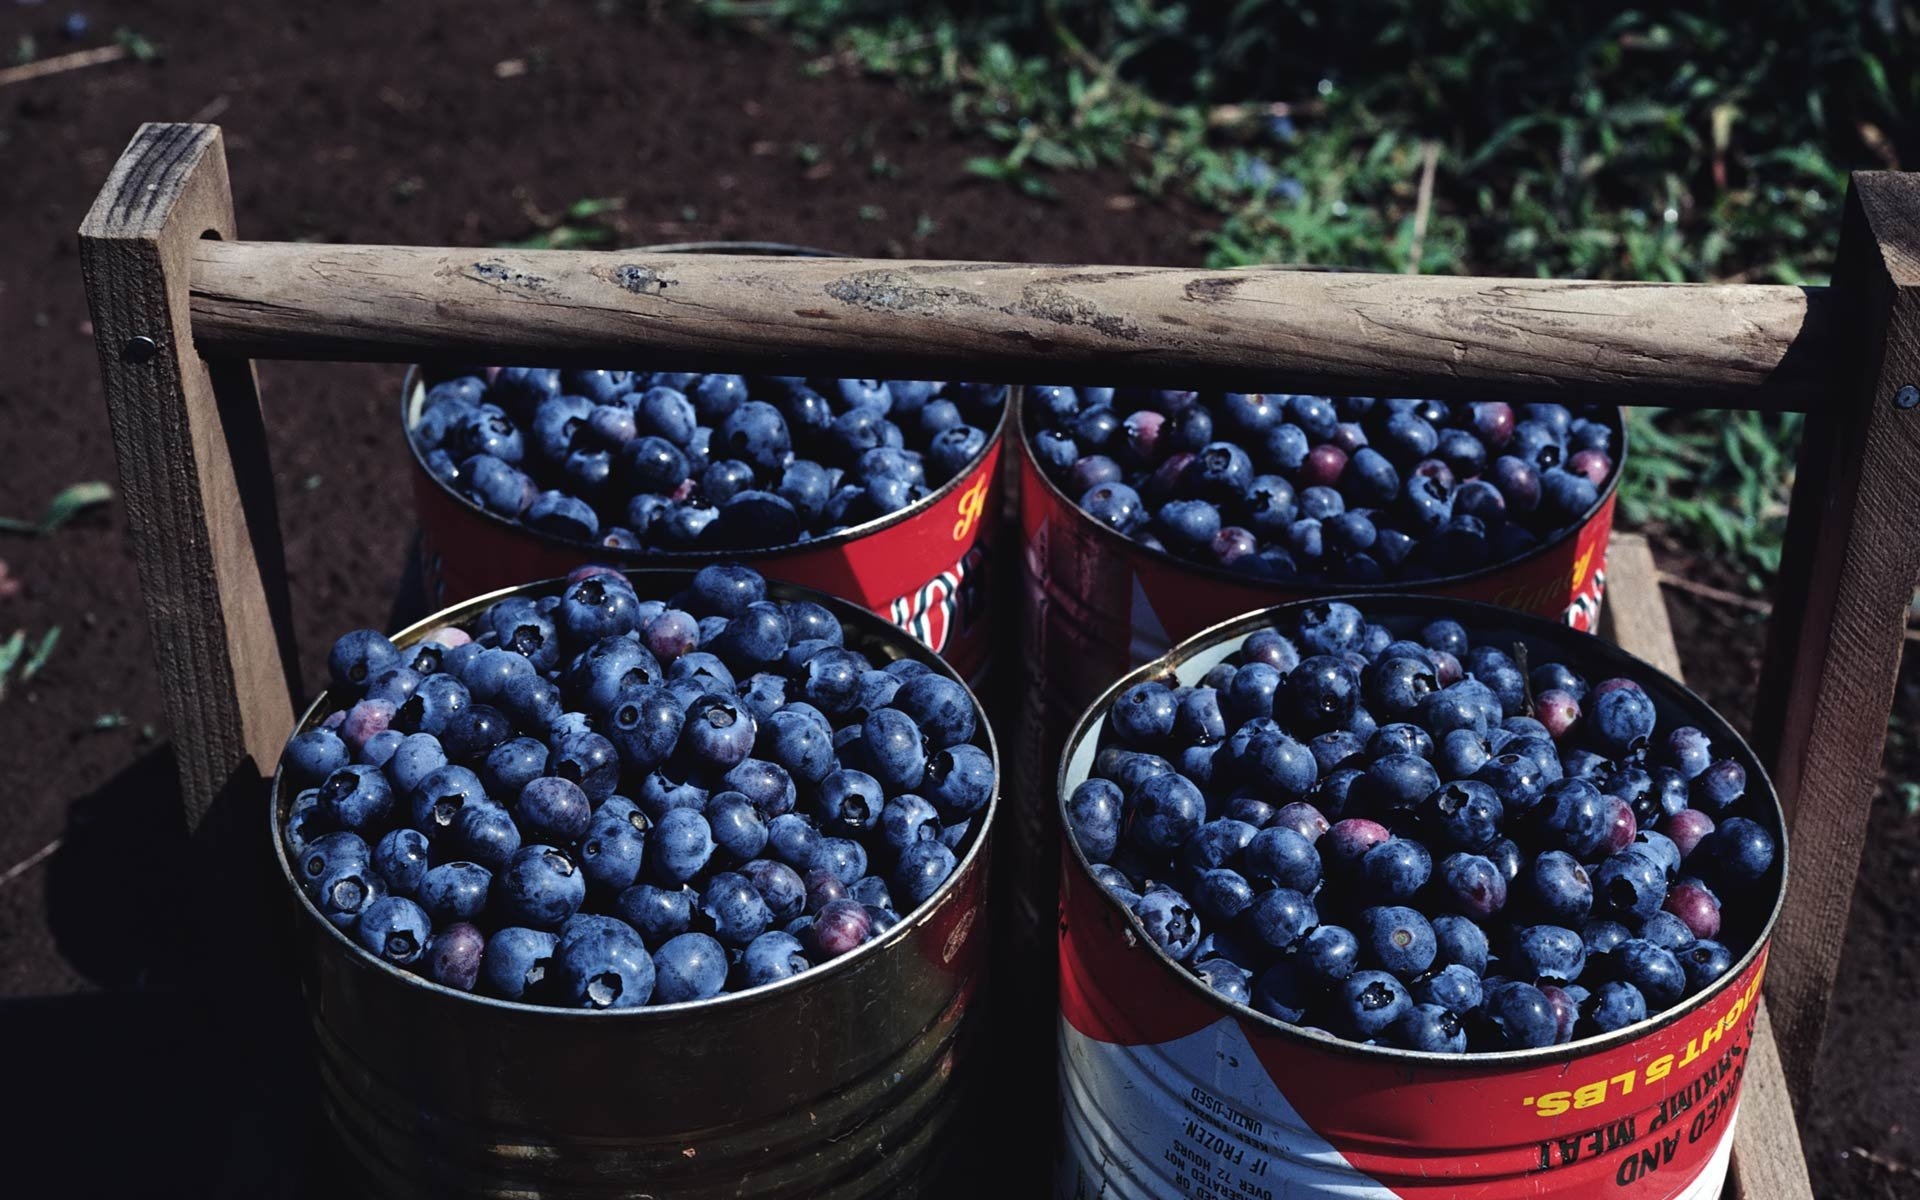 Free Blueberry high quality wallpaper ID:68995 for hd 1920x1200 desktop